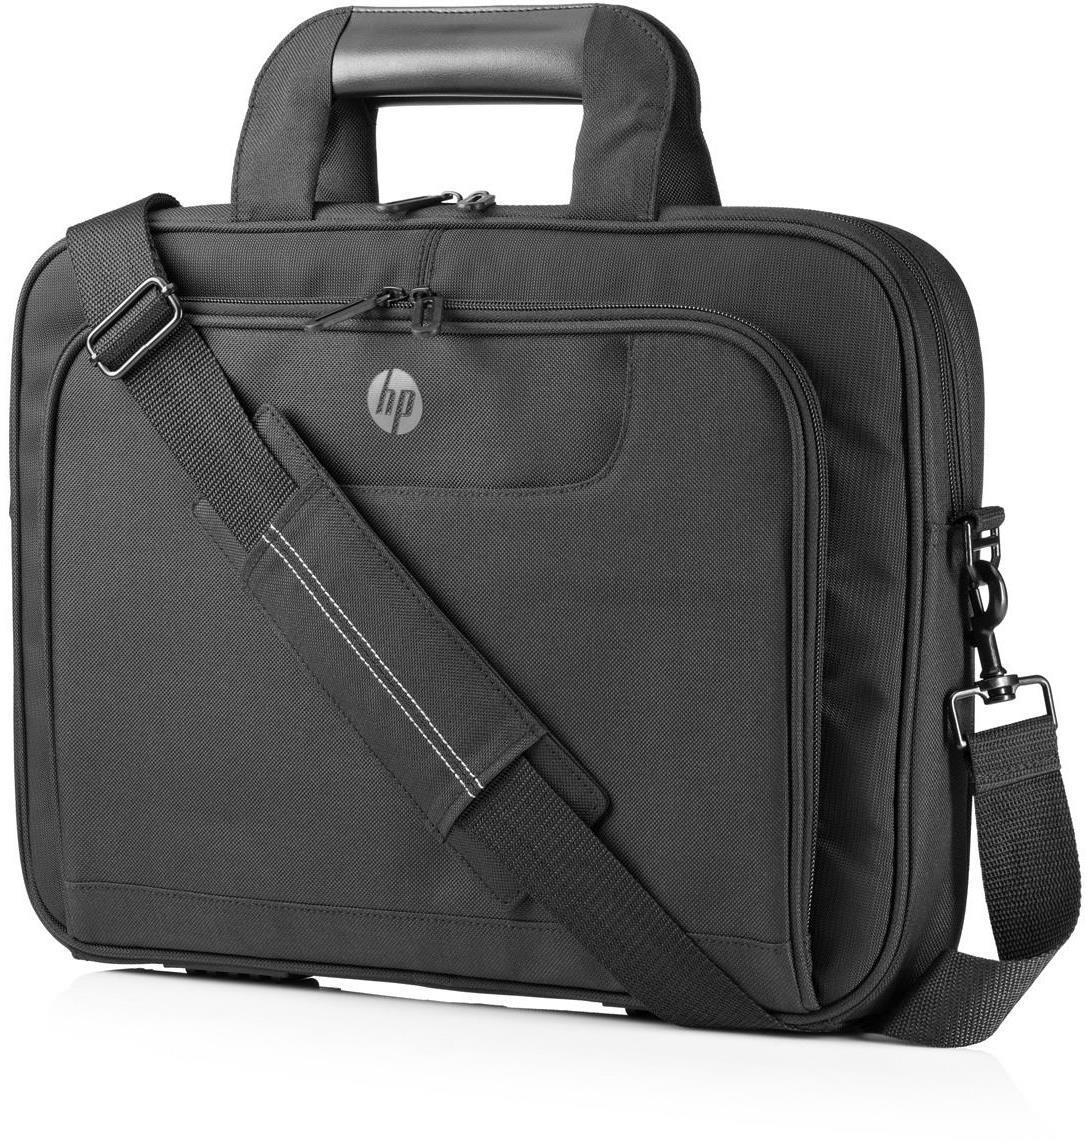 HP Value Top Load Carrying Case - Black